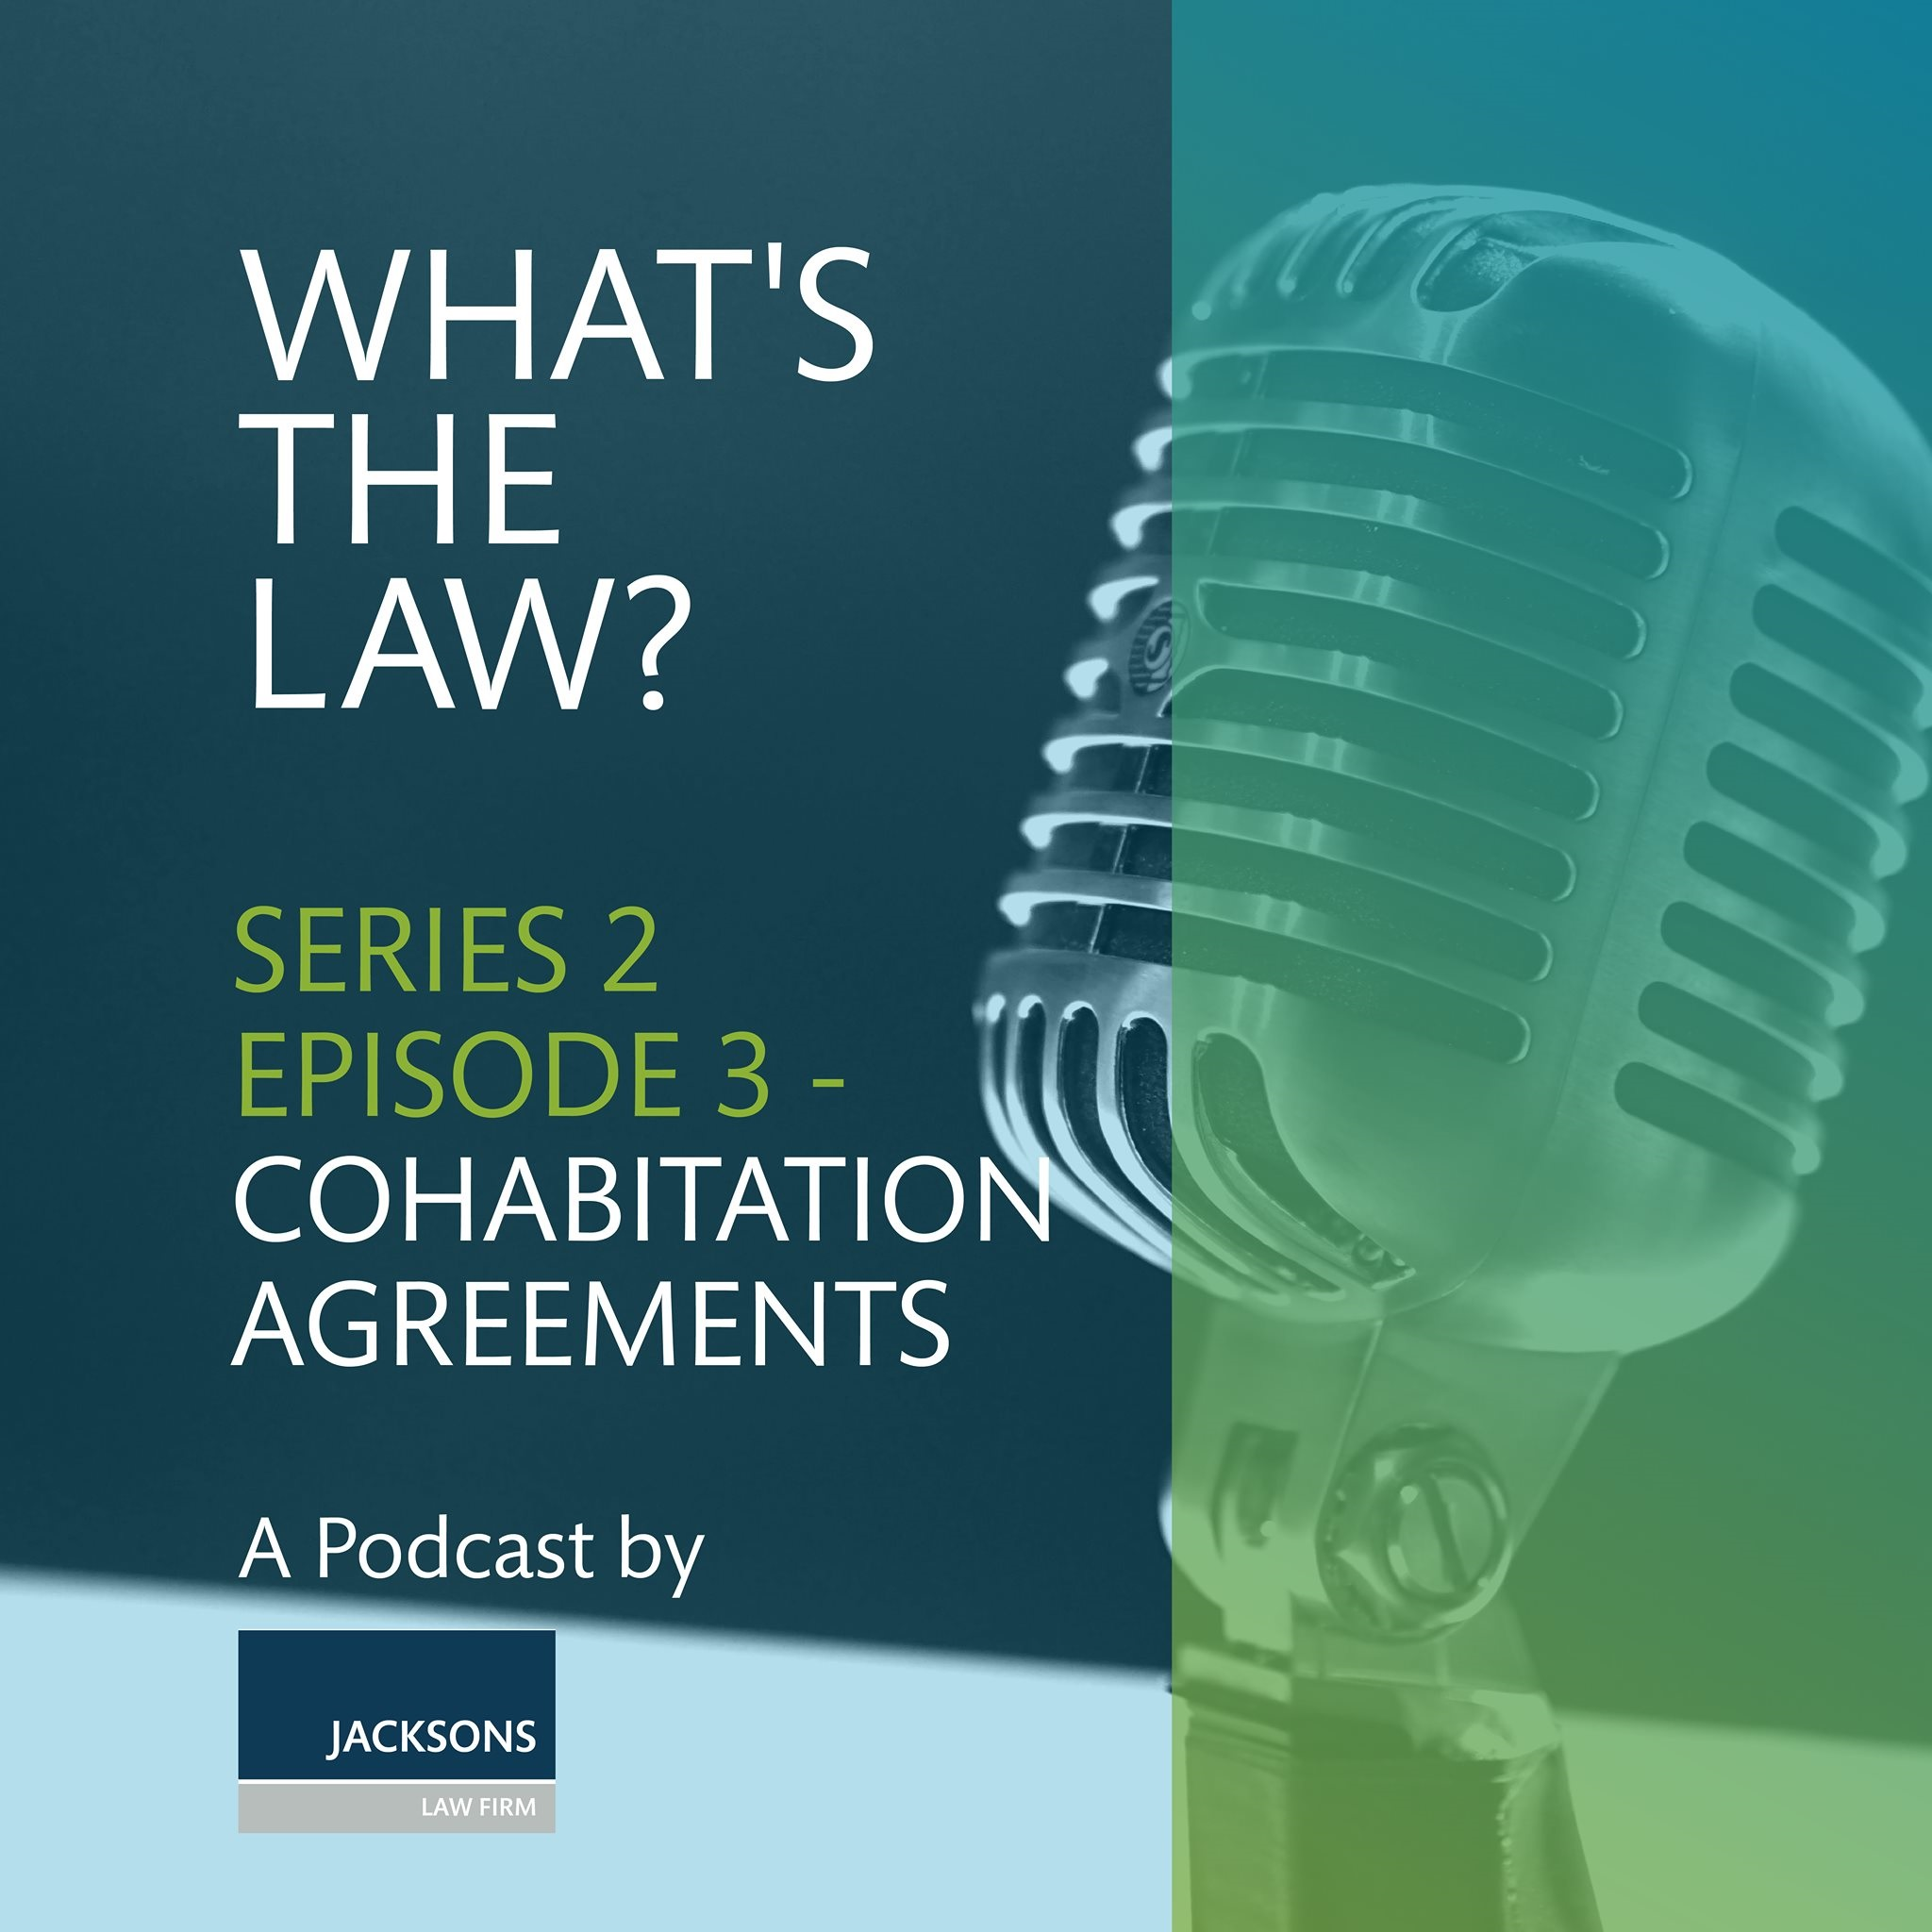 #WhatsTheLawPod – Series 2, Episode 3, Cohabitation Agreements